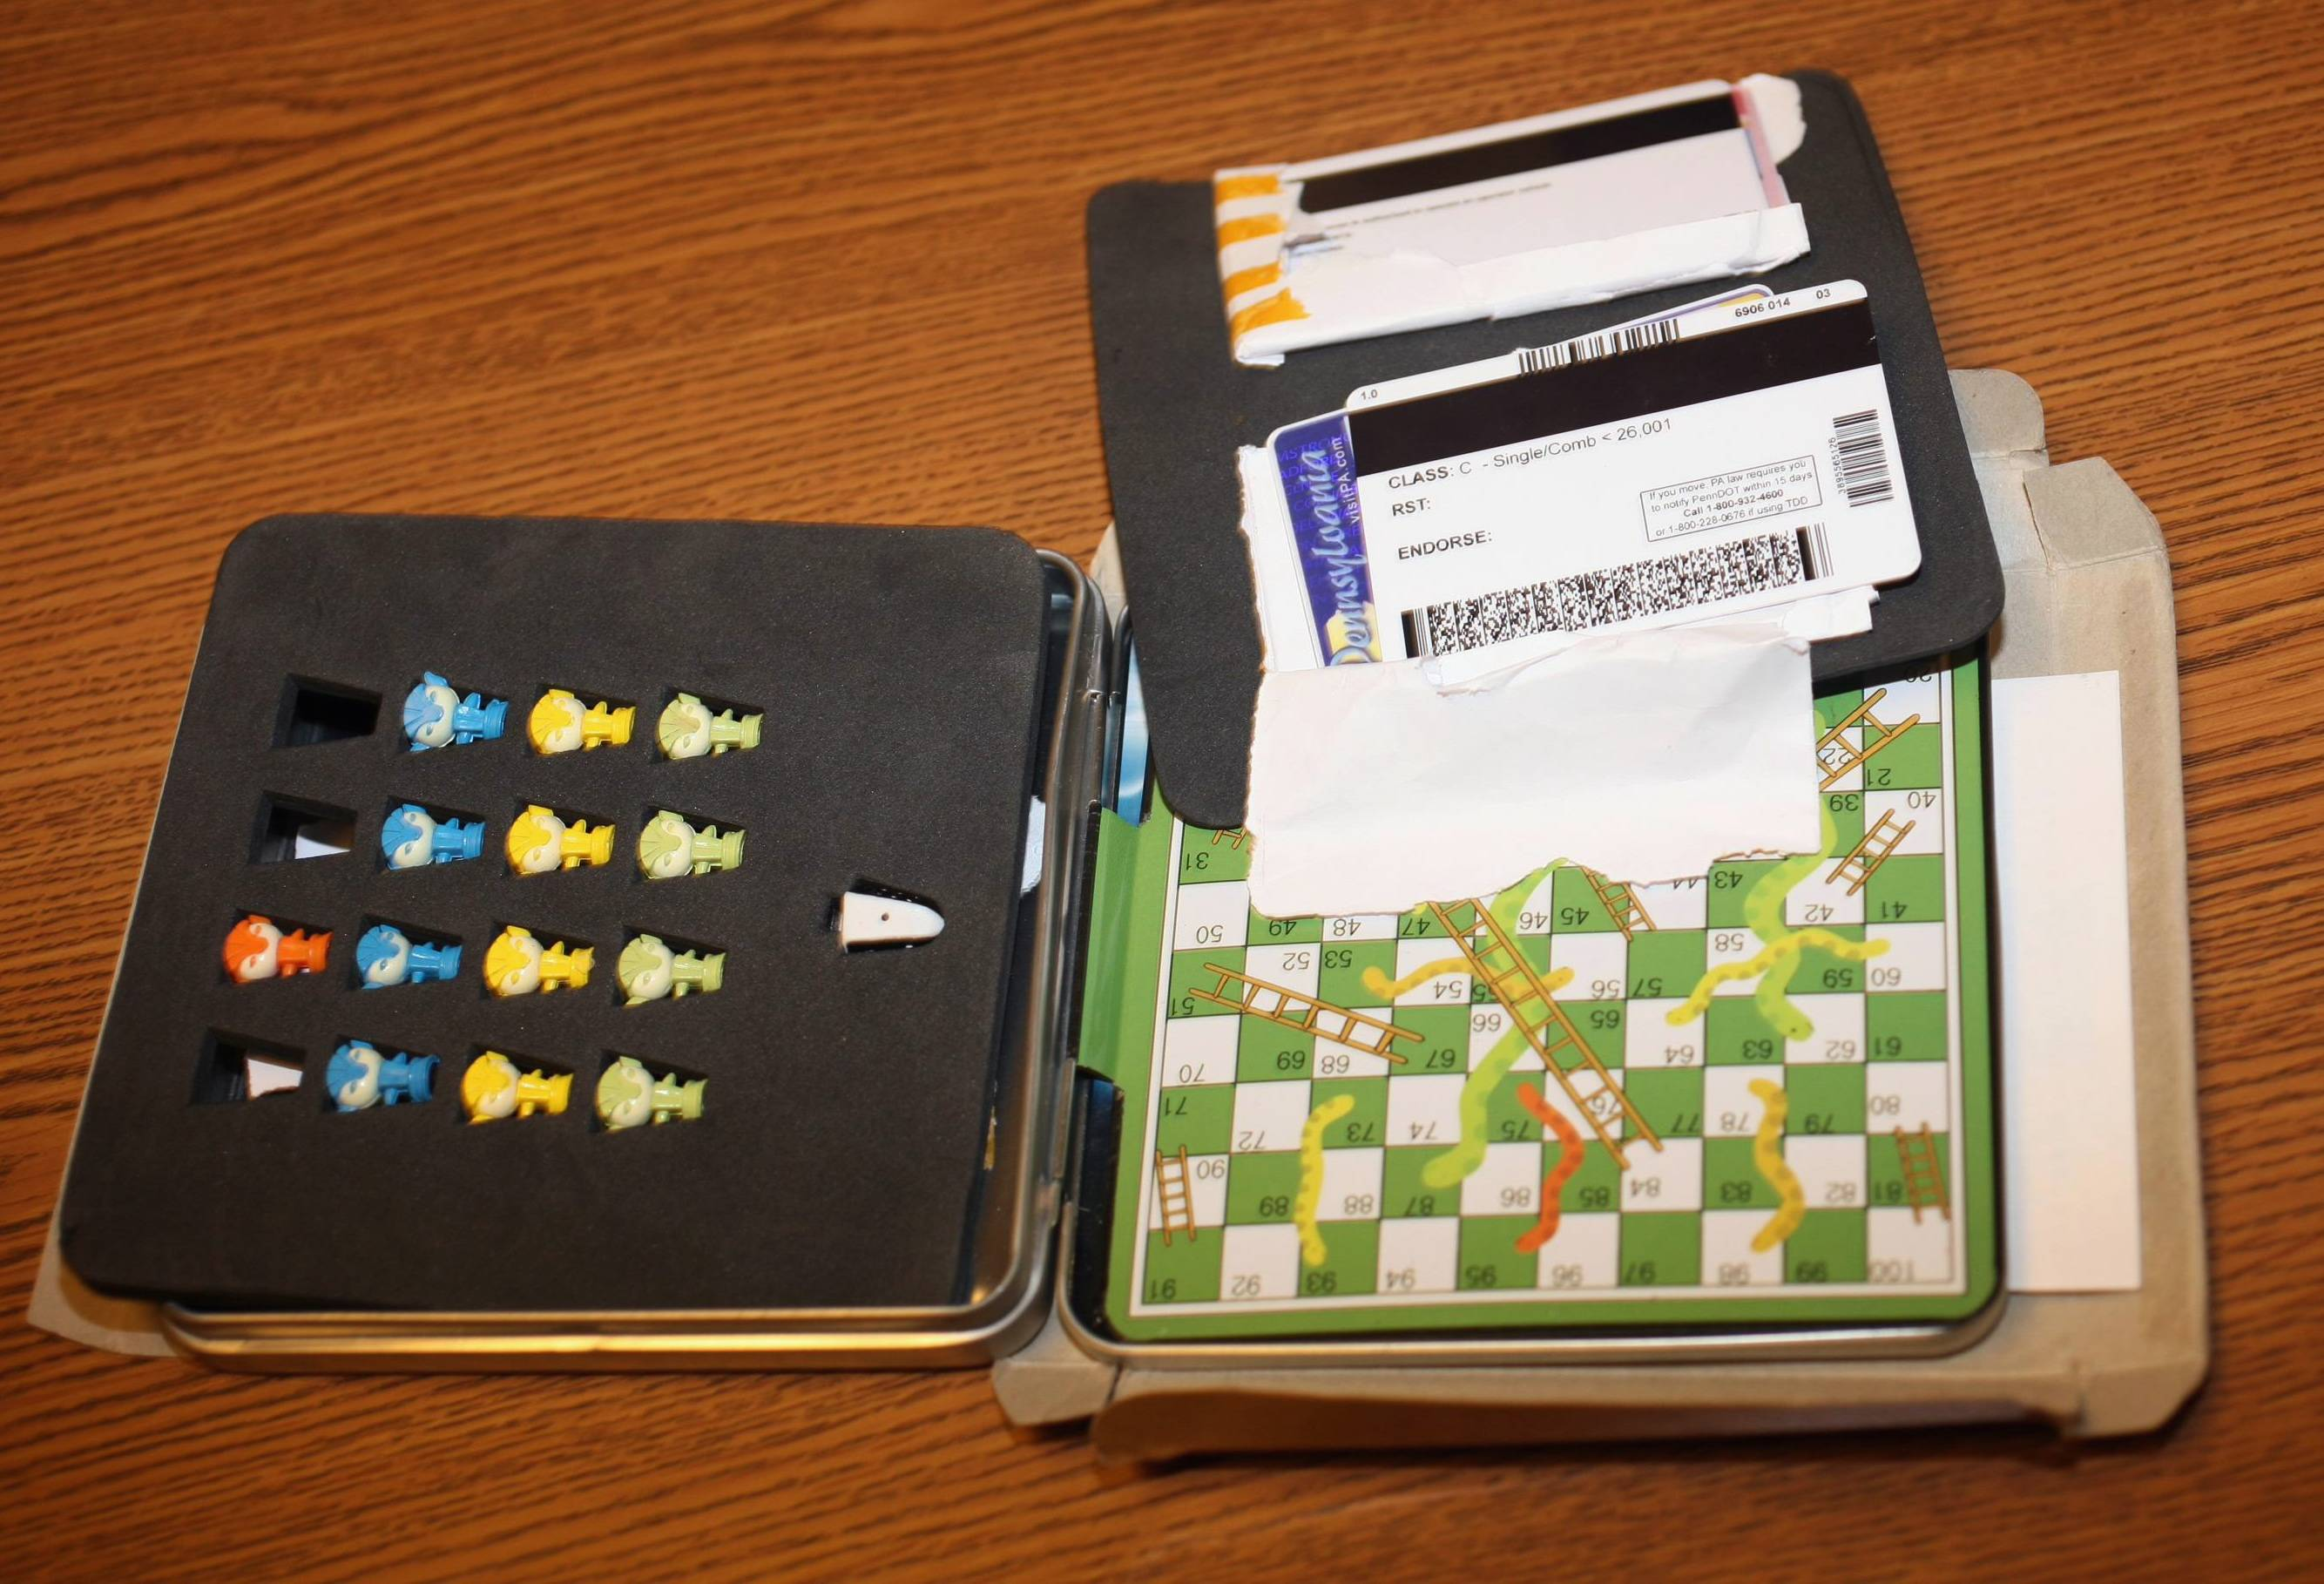 This photo provided by the Cook County Sheriff's Office shows a counterfeit driver's license hidden inside a game shipped from China. At a news conference Friday in Chicago, Sheriff Tom Dart said 1,700 counterfeit drivers's licenses were seized by Customs agents after being shipped earlier this year from China. Dart said 40 young people between the ages of 17 and 20 years old have been charged with buying the fake IDs.